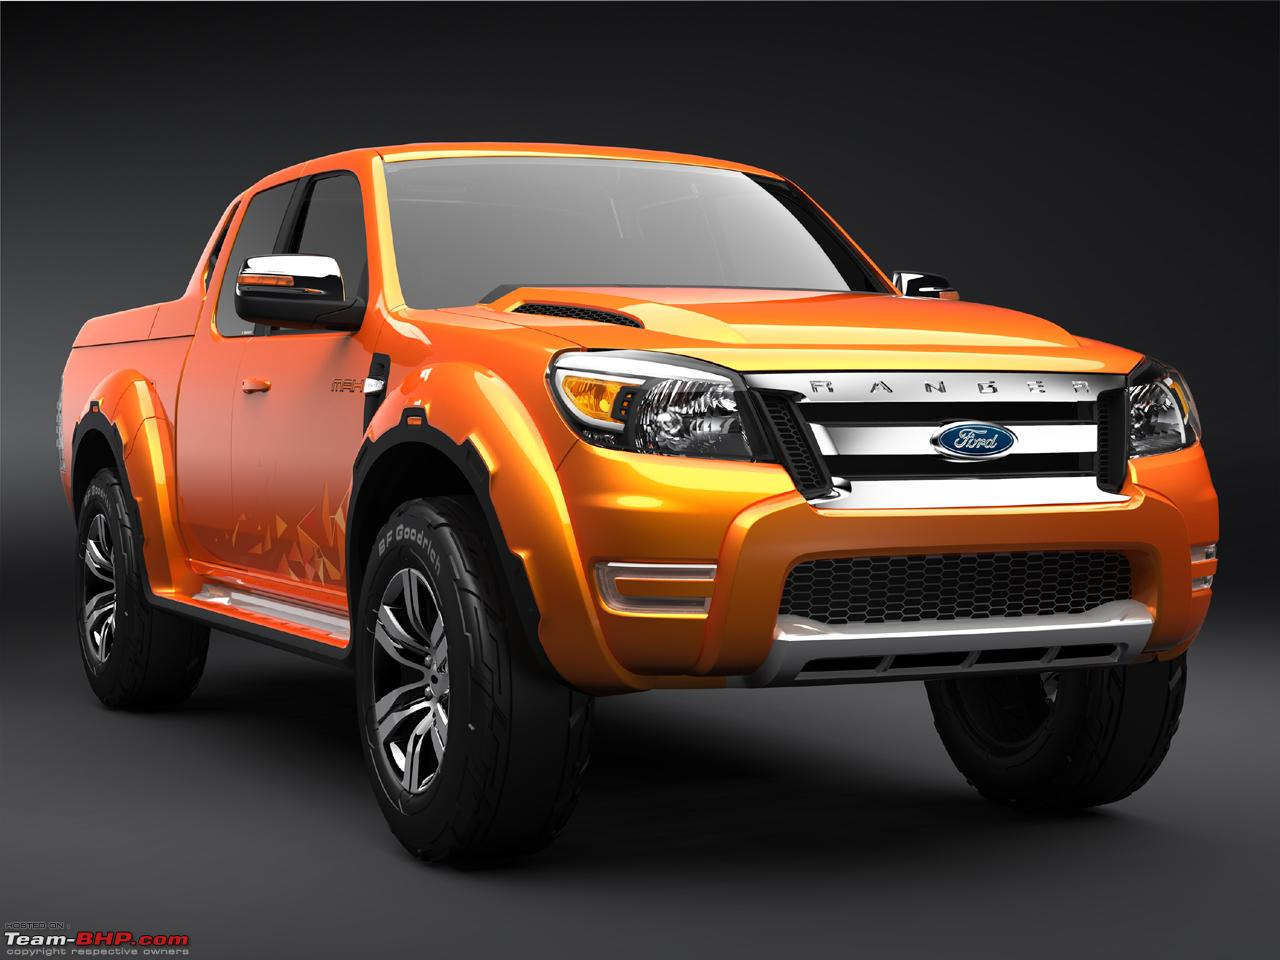 Ford endeavour 2007 photo - 3